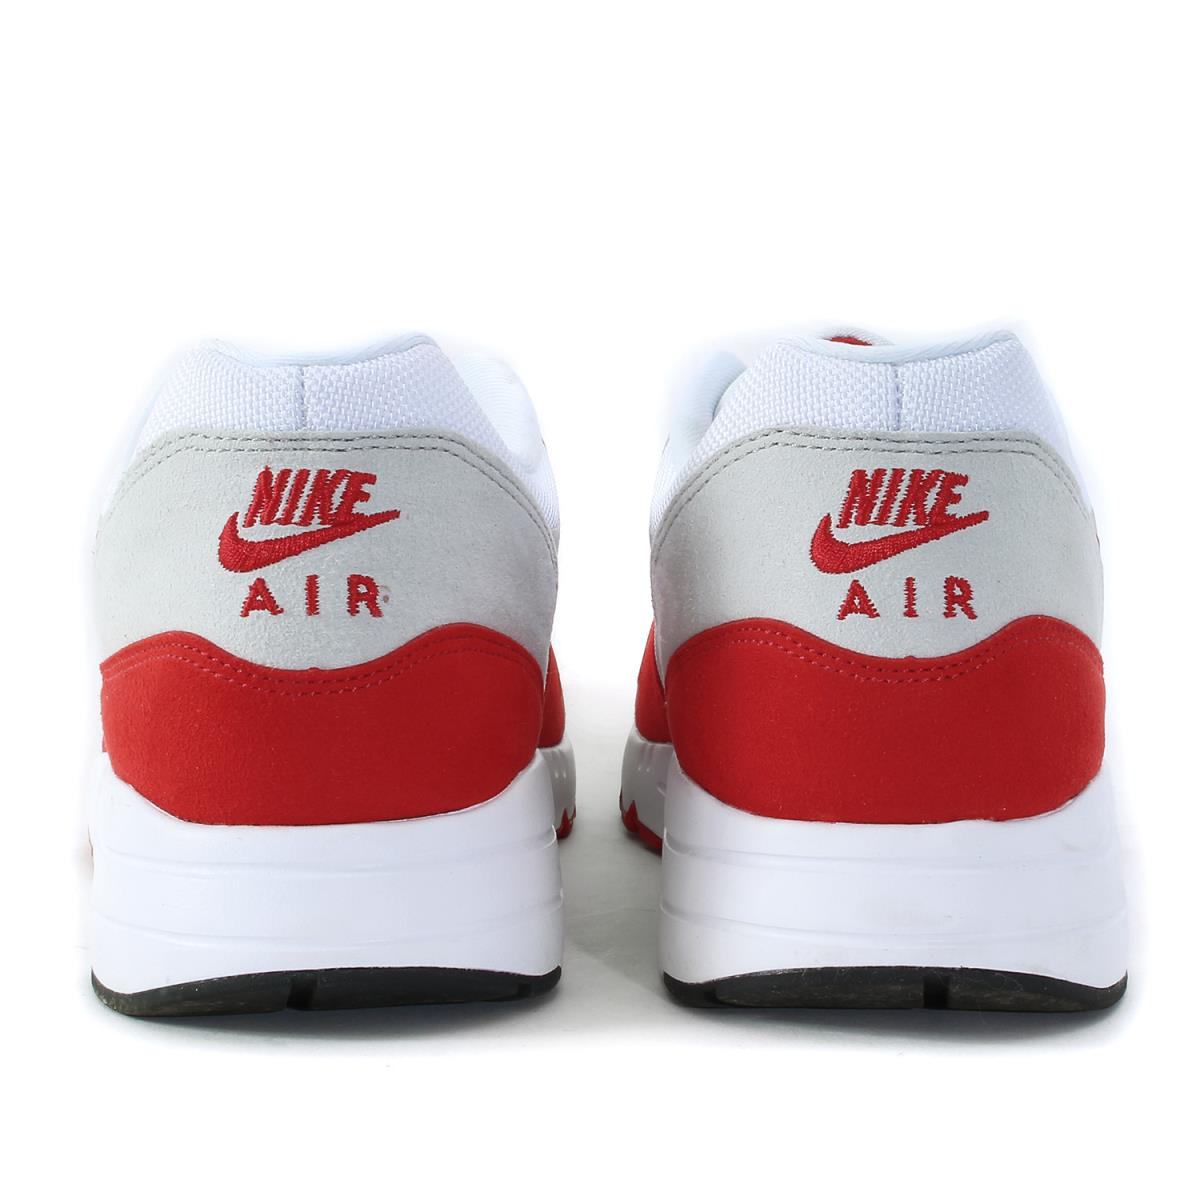 NIKE (Nike) AIR MAX 1 ULTRA 2.0 LE (908,091 100) white X bar city red beauty product US10(28cm)